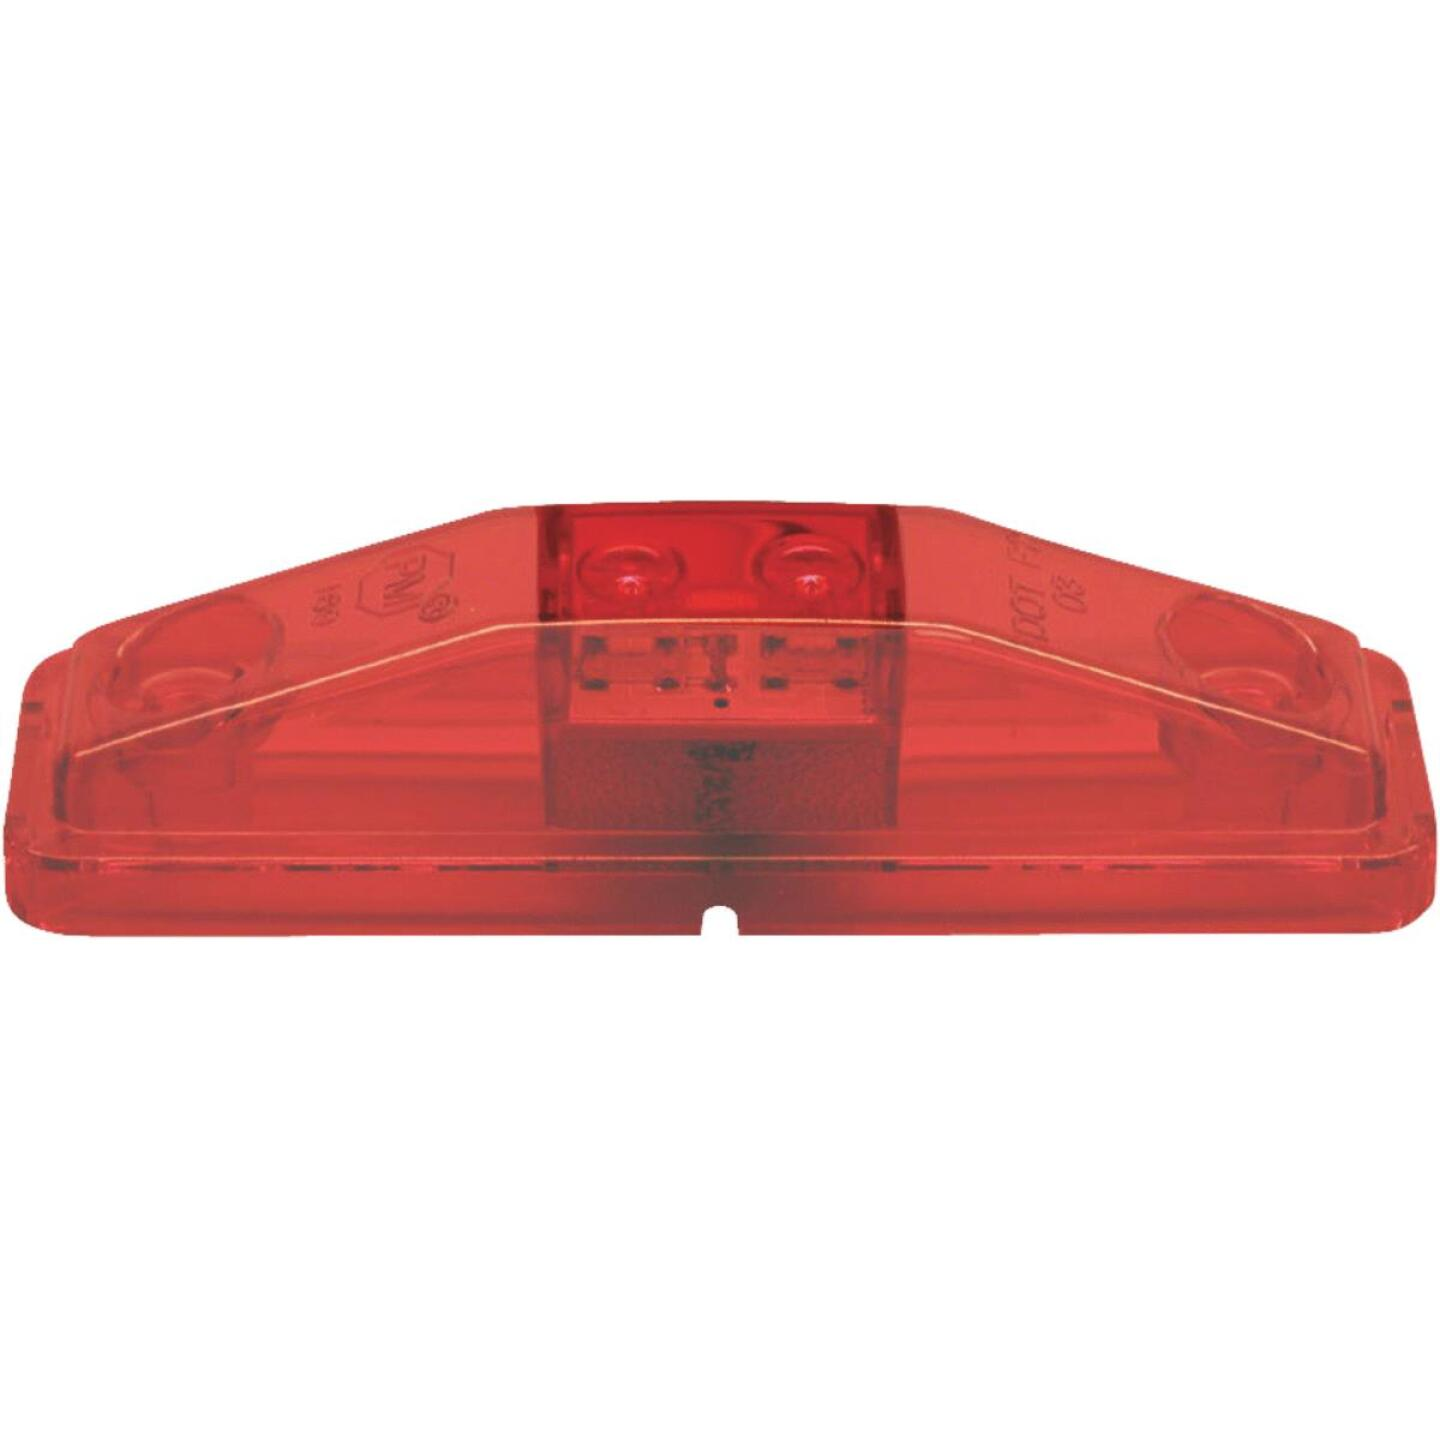 Peterson Rectangle Red Clearance Light Image 1